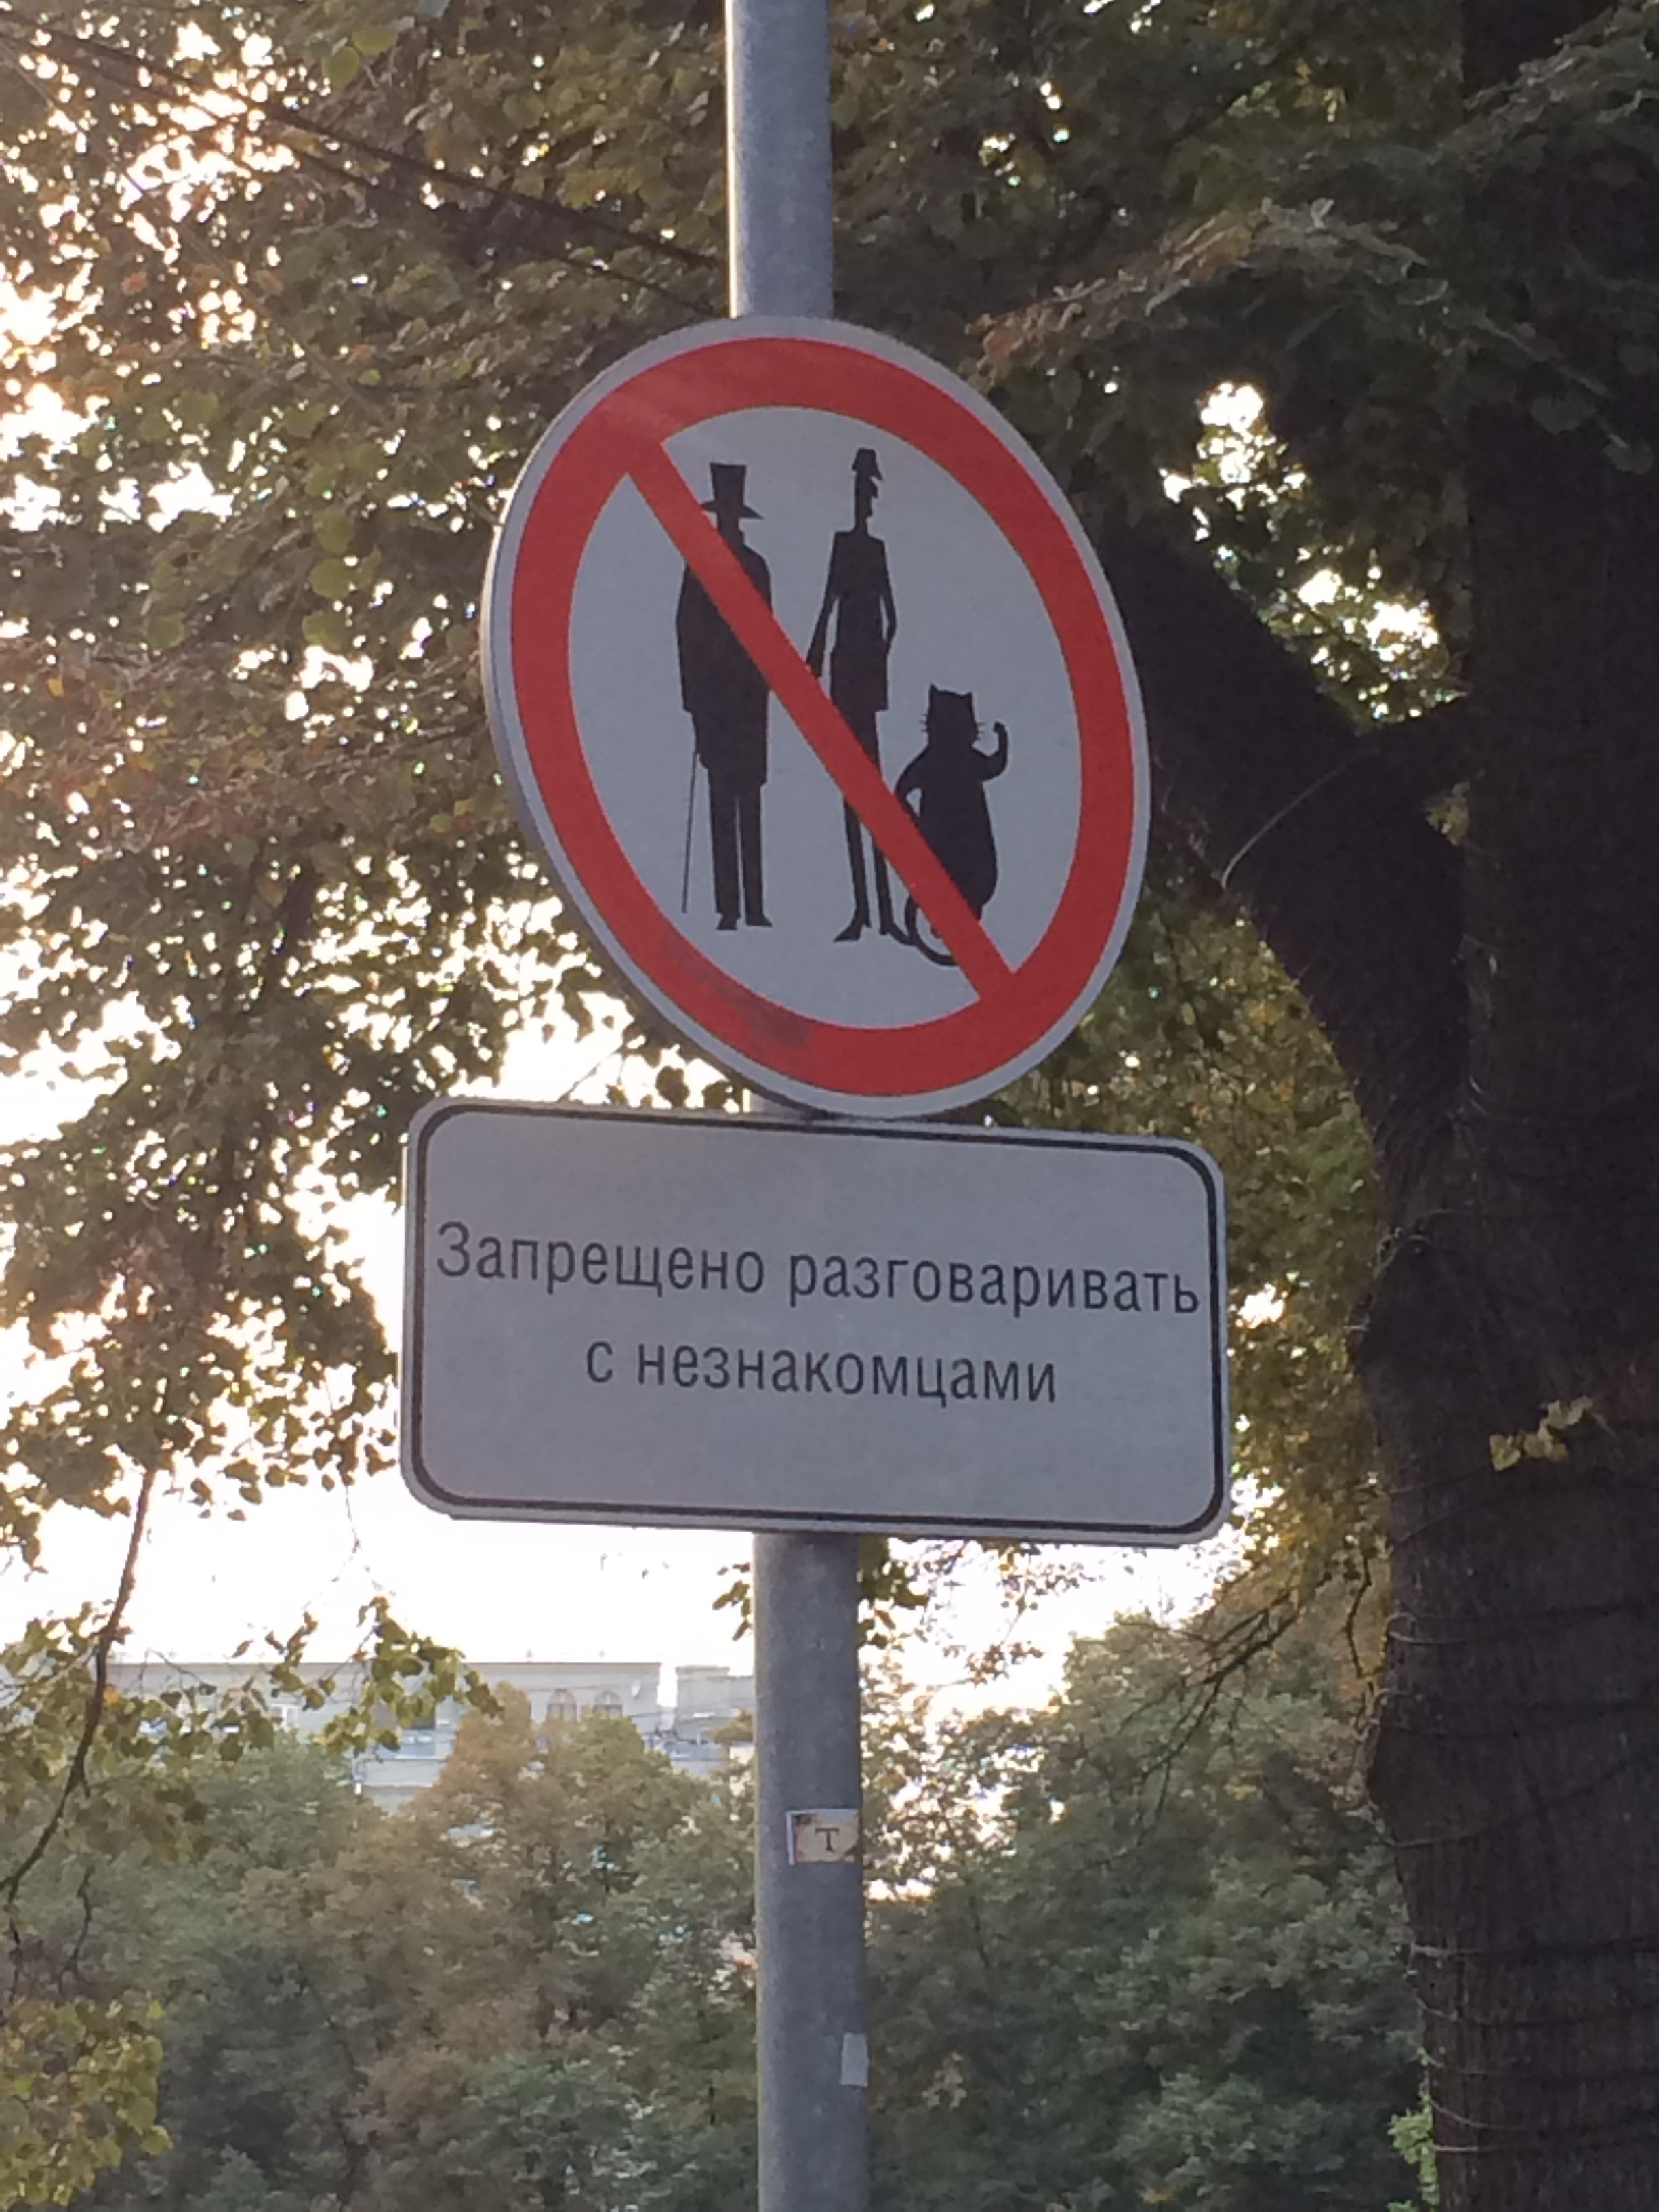 """Speaking with strangers is forbidden"" in Patriarch Ponds."